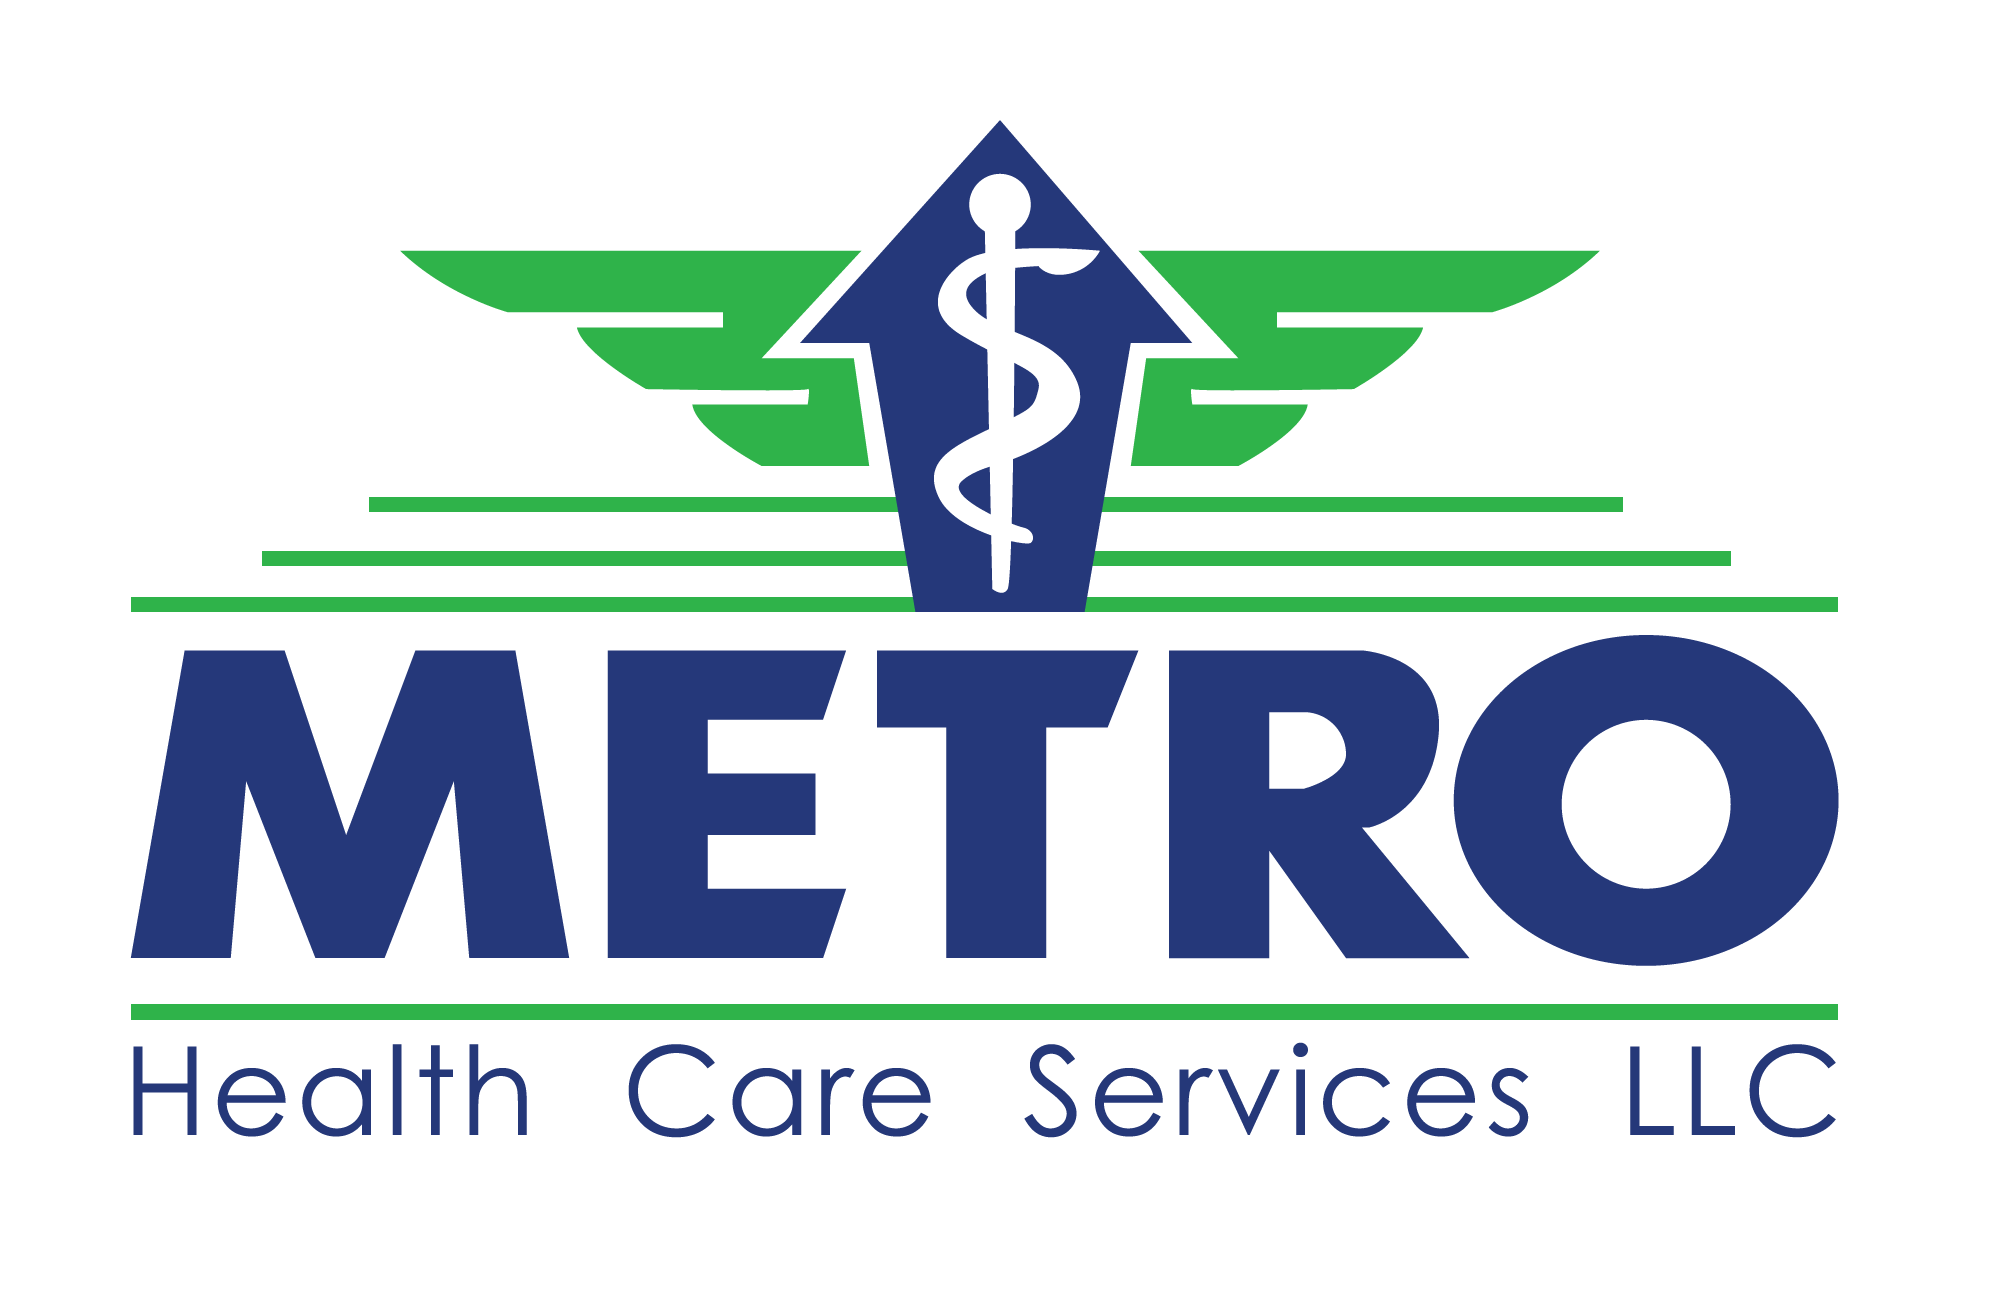 Metro Health Care Services LLC